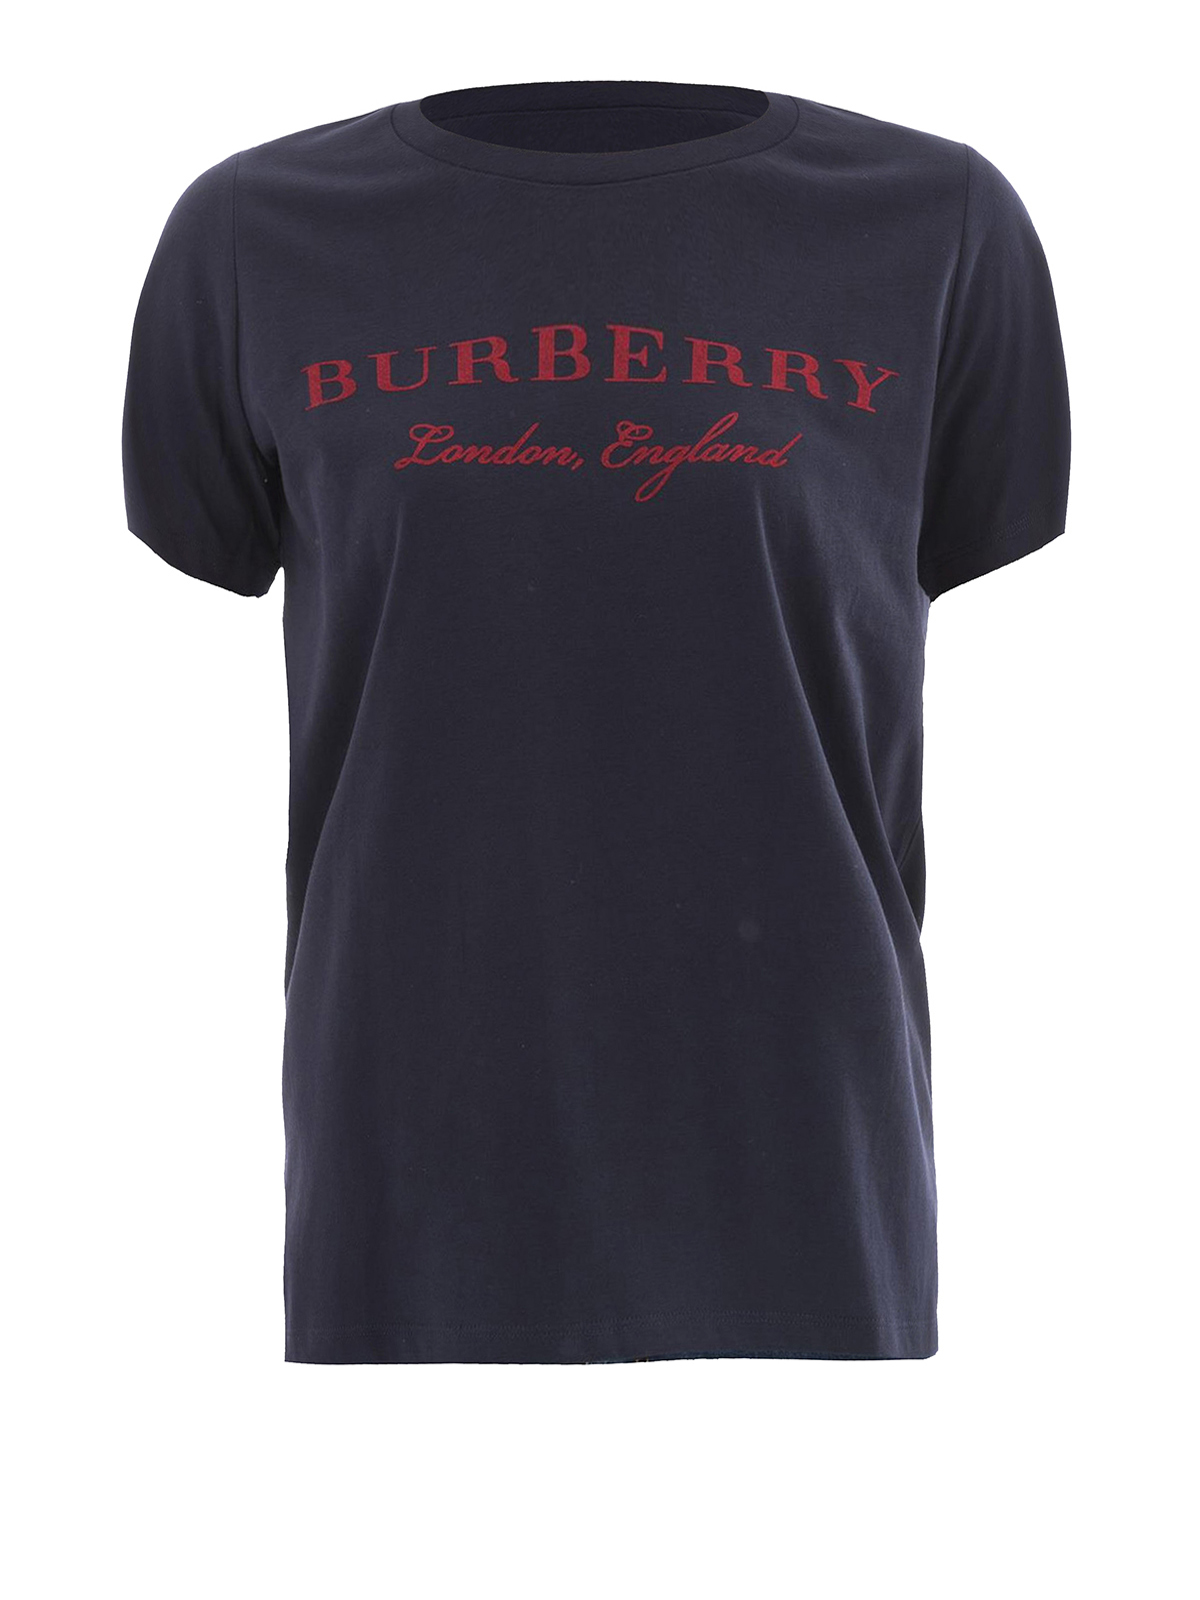 Logo print scoop neck cotton tee by burberry t shirts for Shirts with logo print